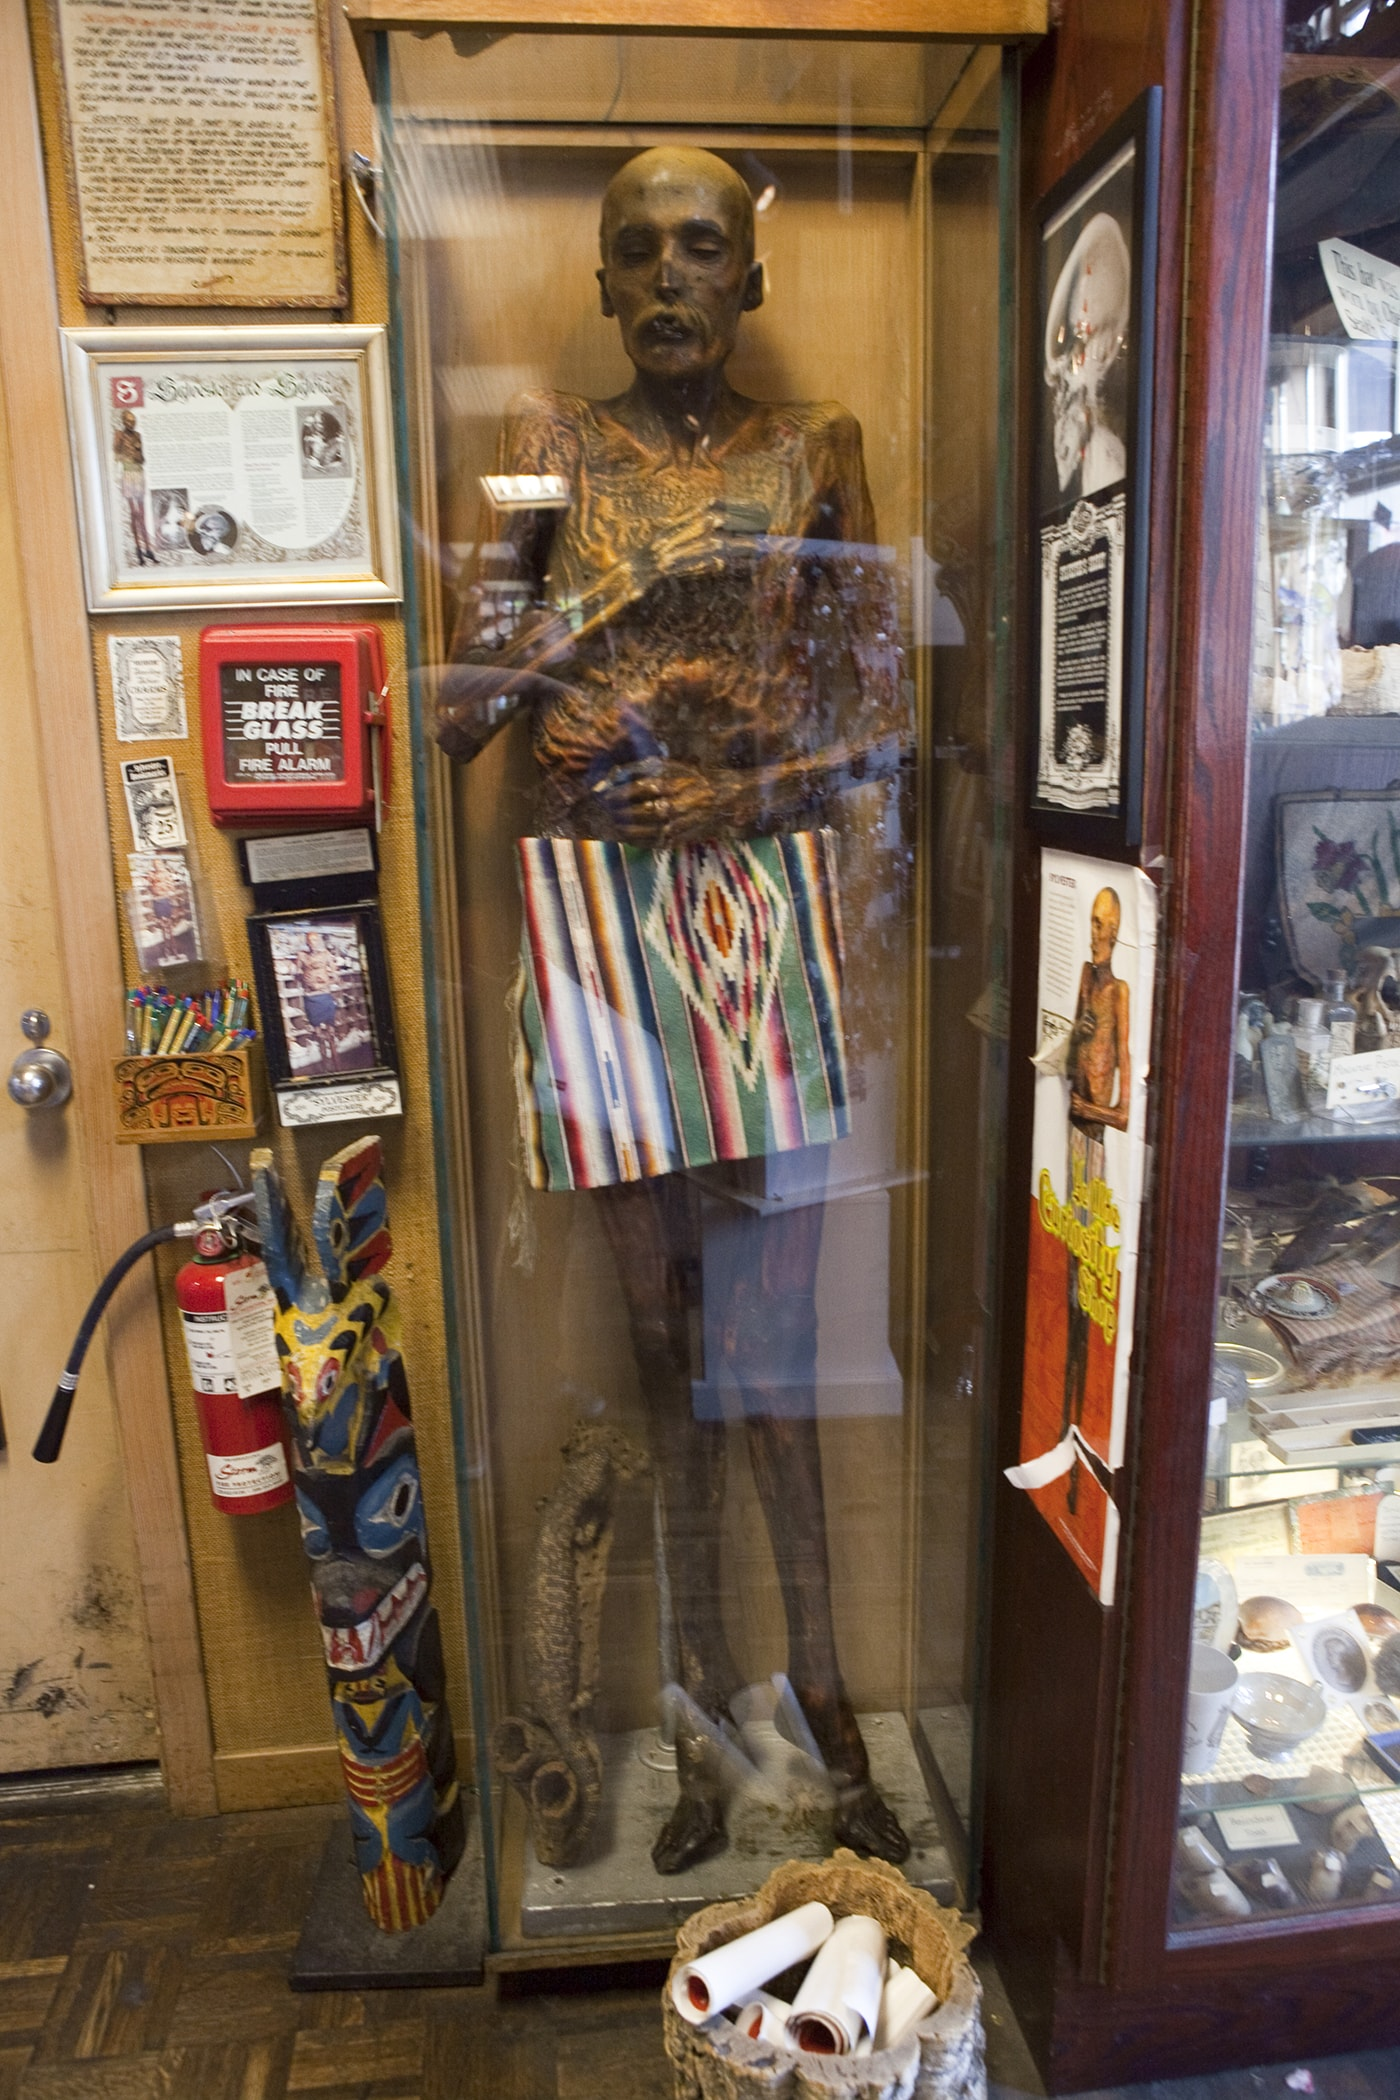 Mummified man at Ye Olde Curiosity Shoppe in Seattle, Washington